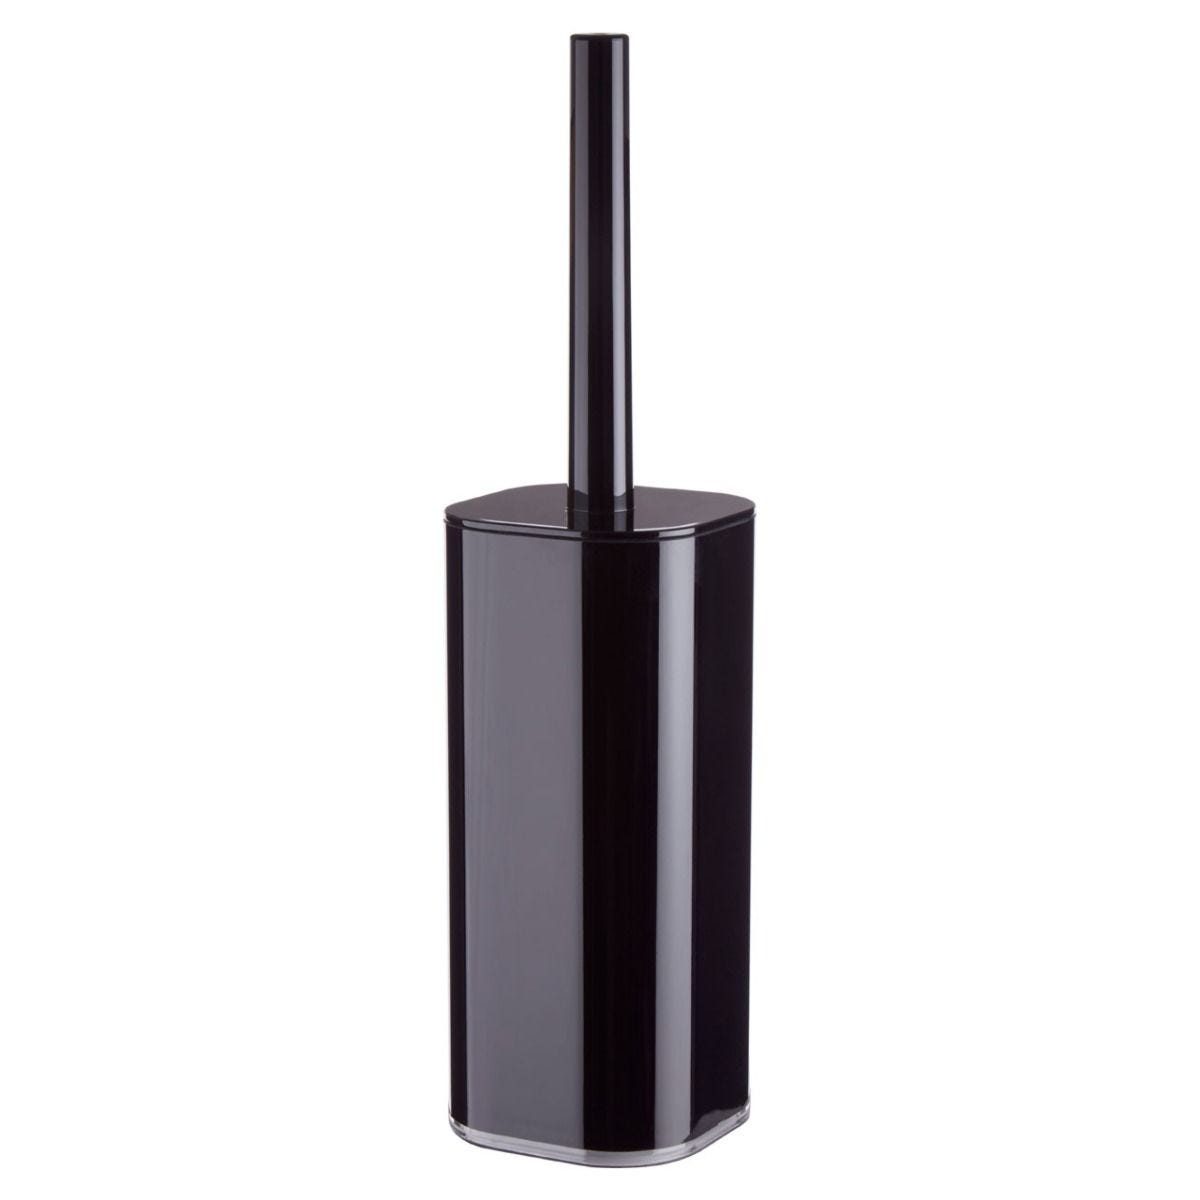 Premier Housewares Ando Black Toilet Brush And Holder